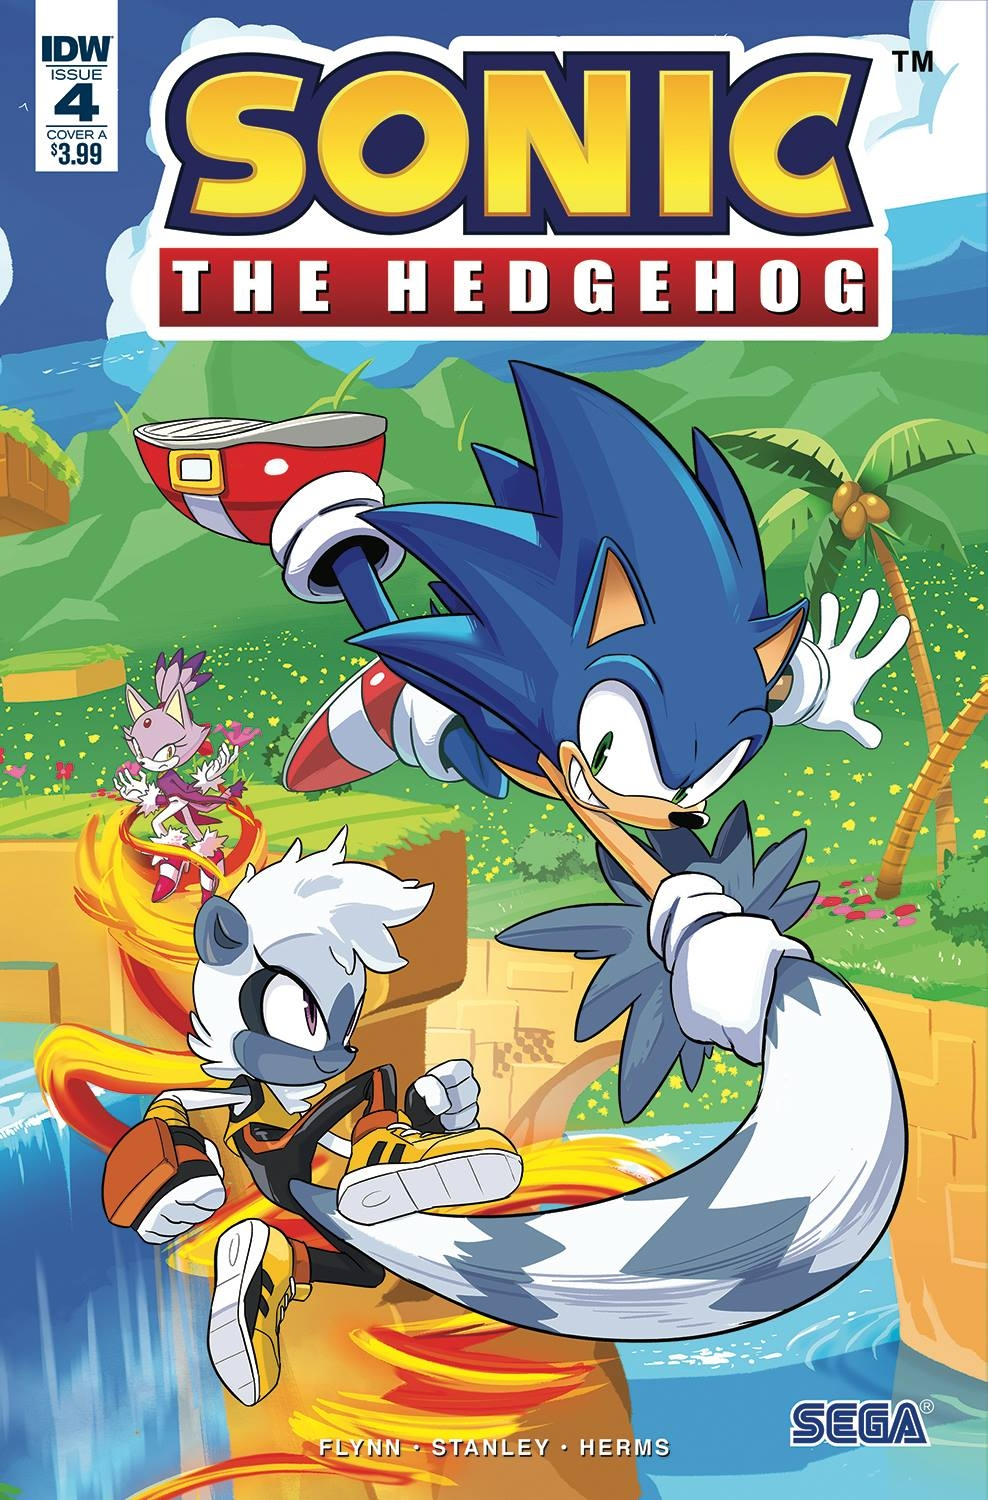 Sonic The Hedgehog #4 Cover A